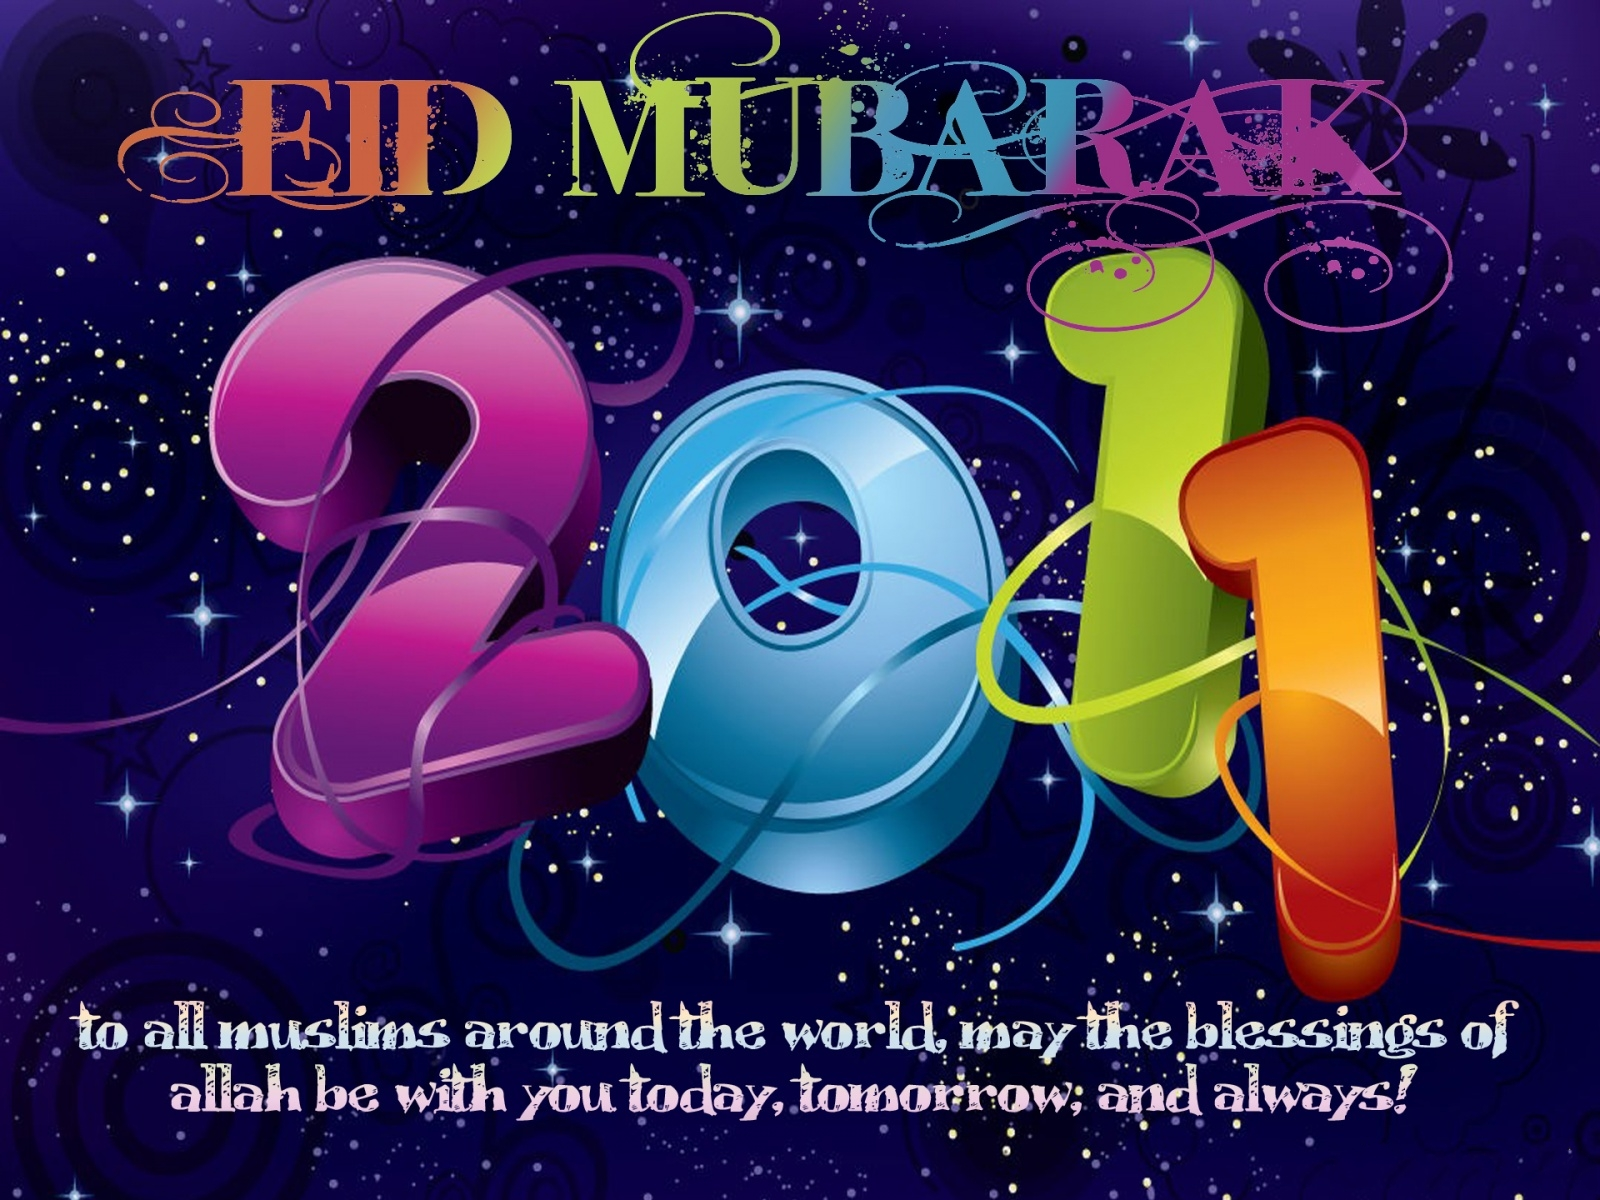 http://3.bp.blogspot.com/-pH03S1uNLYg/TrVW-xVGtAI/AAAAAAAABIE/3tZZB5GbNIs/s1600/new_hd_beautiful_eid_wallpaper-1600x1200.jpg